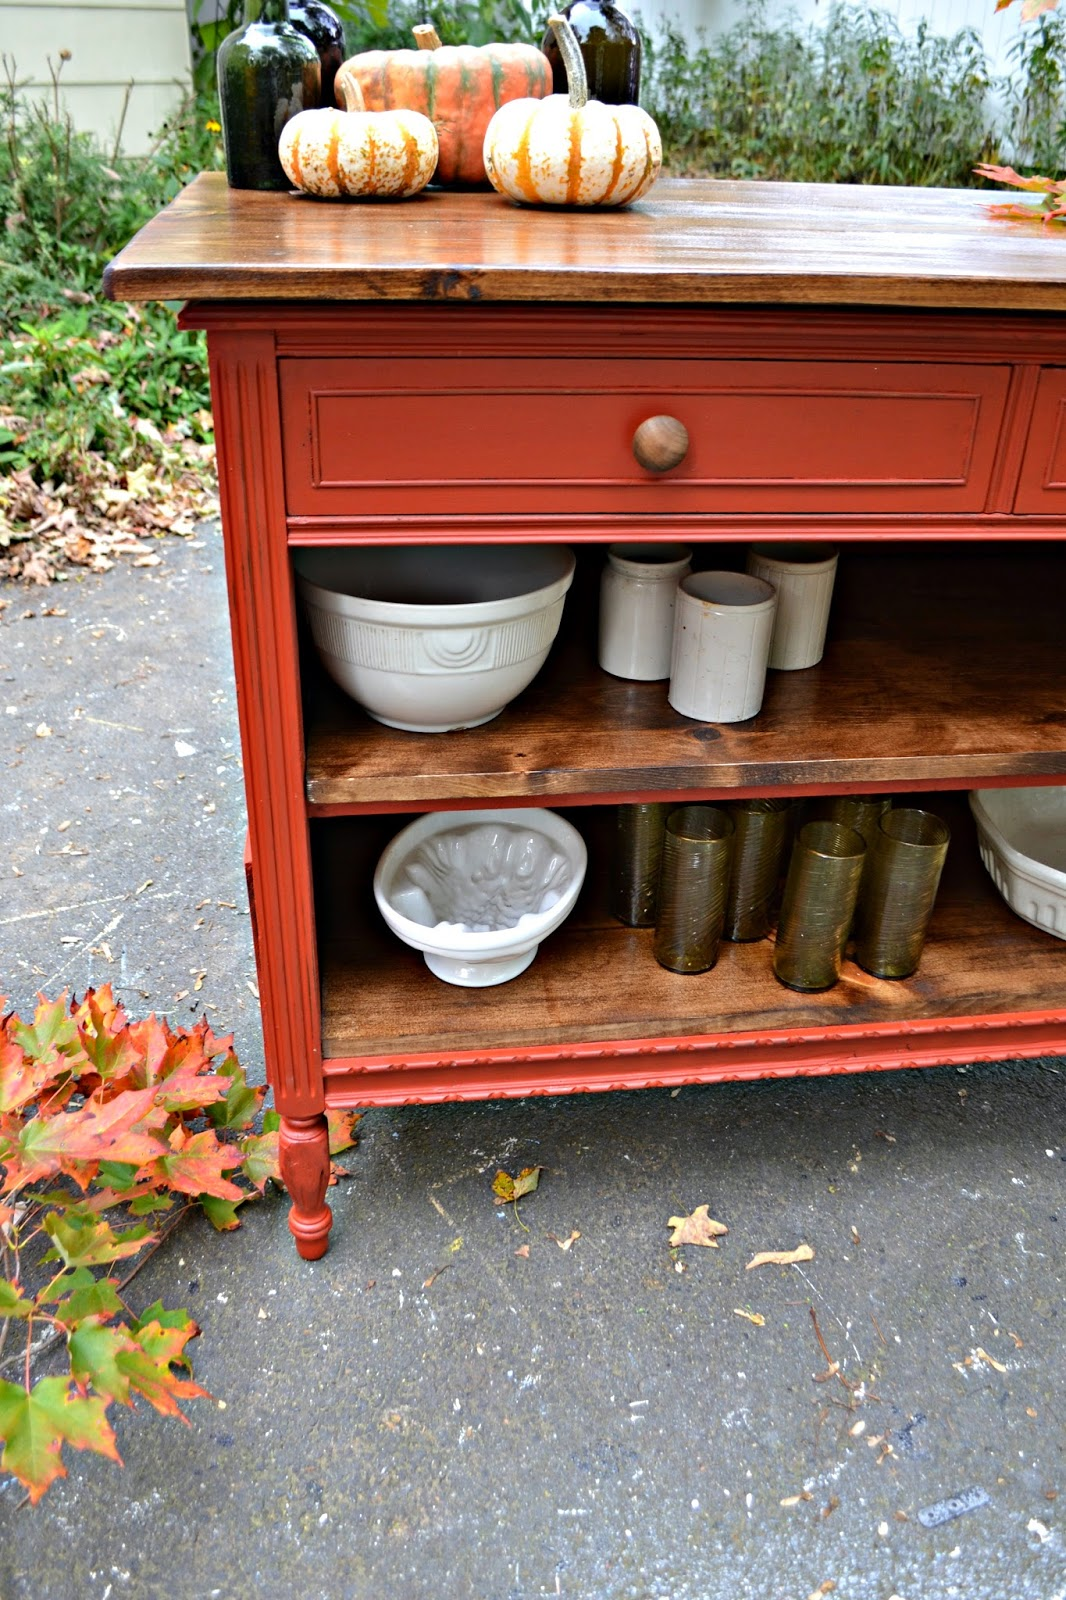 Turn A Dresser Into A Kitchen Island: Heir And Space: An Antique Dresser Turned Kitchen Island